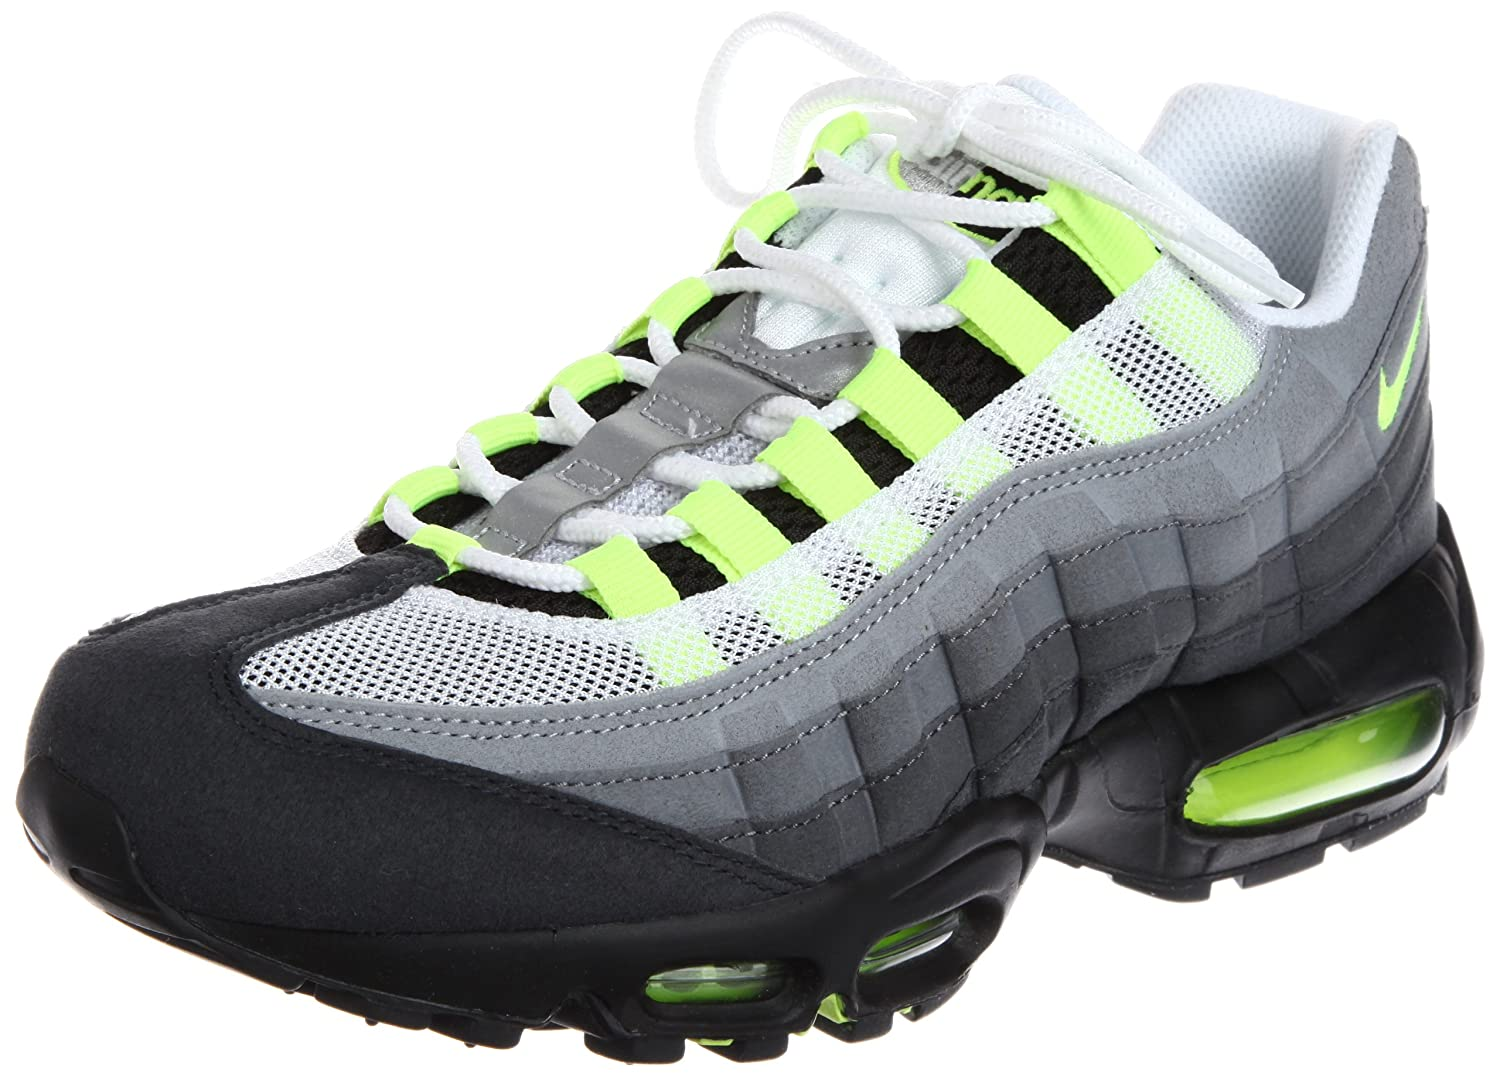 nike air max 95 og mens running shoes 554970-174